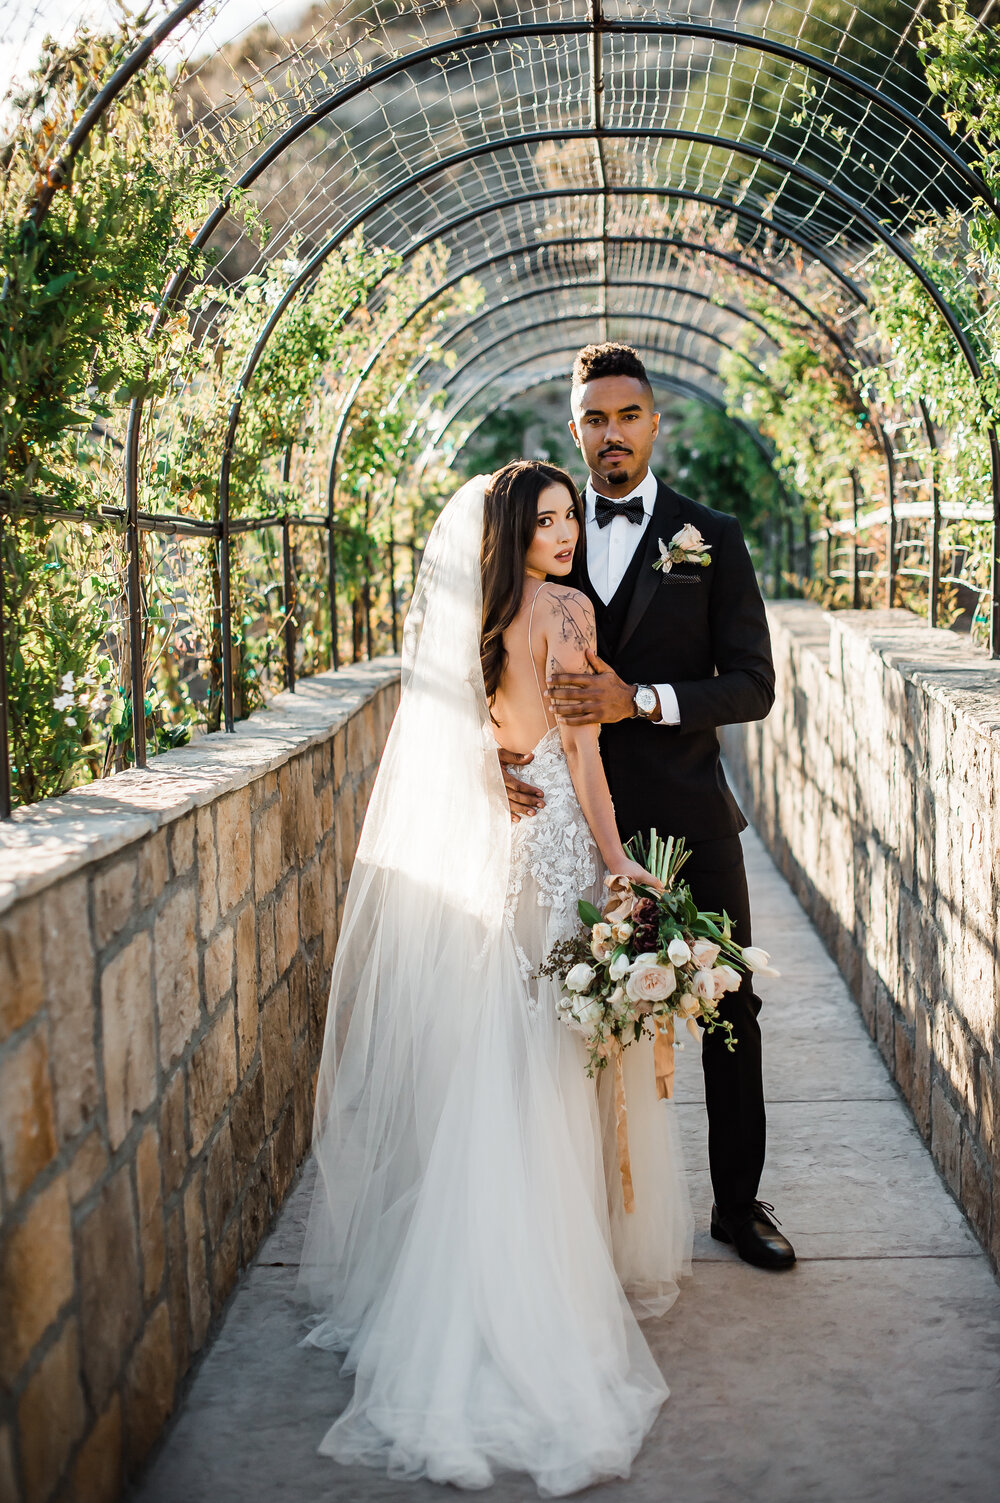 www.santabarbarawedding.com | The Tavern at Zaca Creek | Events by Fran | Michelle Ramirez Photography | Tangled Lotus | Friar Tux | Ever After Bridal | EmmaLinh | Bride and Groom Under Arch